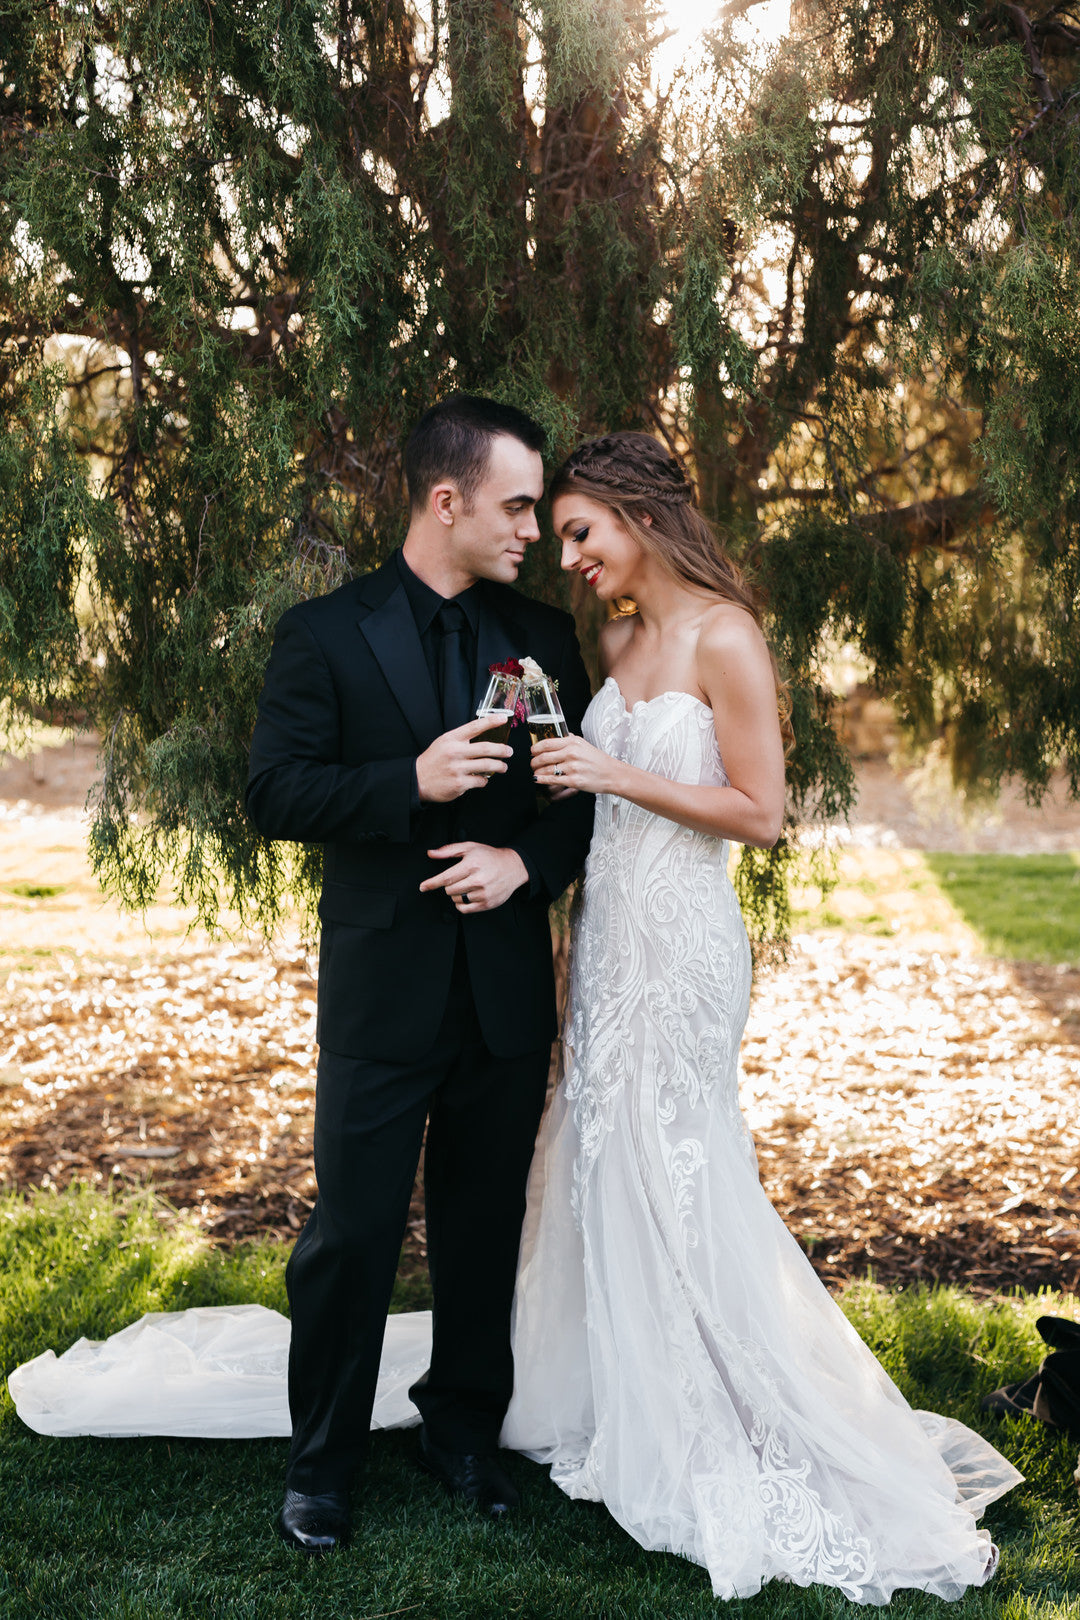 Bride And Groom Clinking Champagne Glasses | A Vintage Gothic Halloween Wedding | Kate Aspen